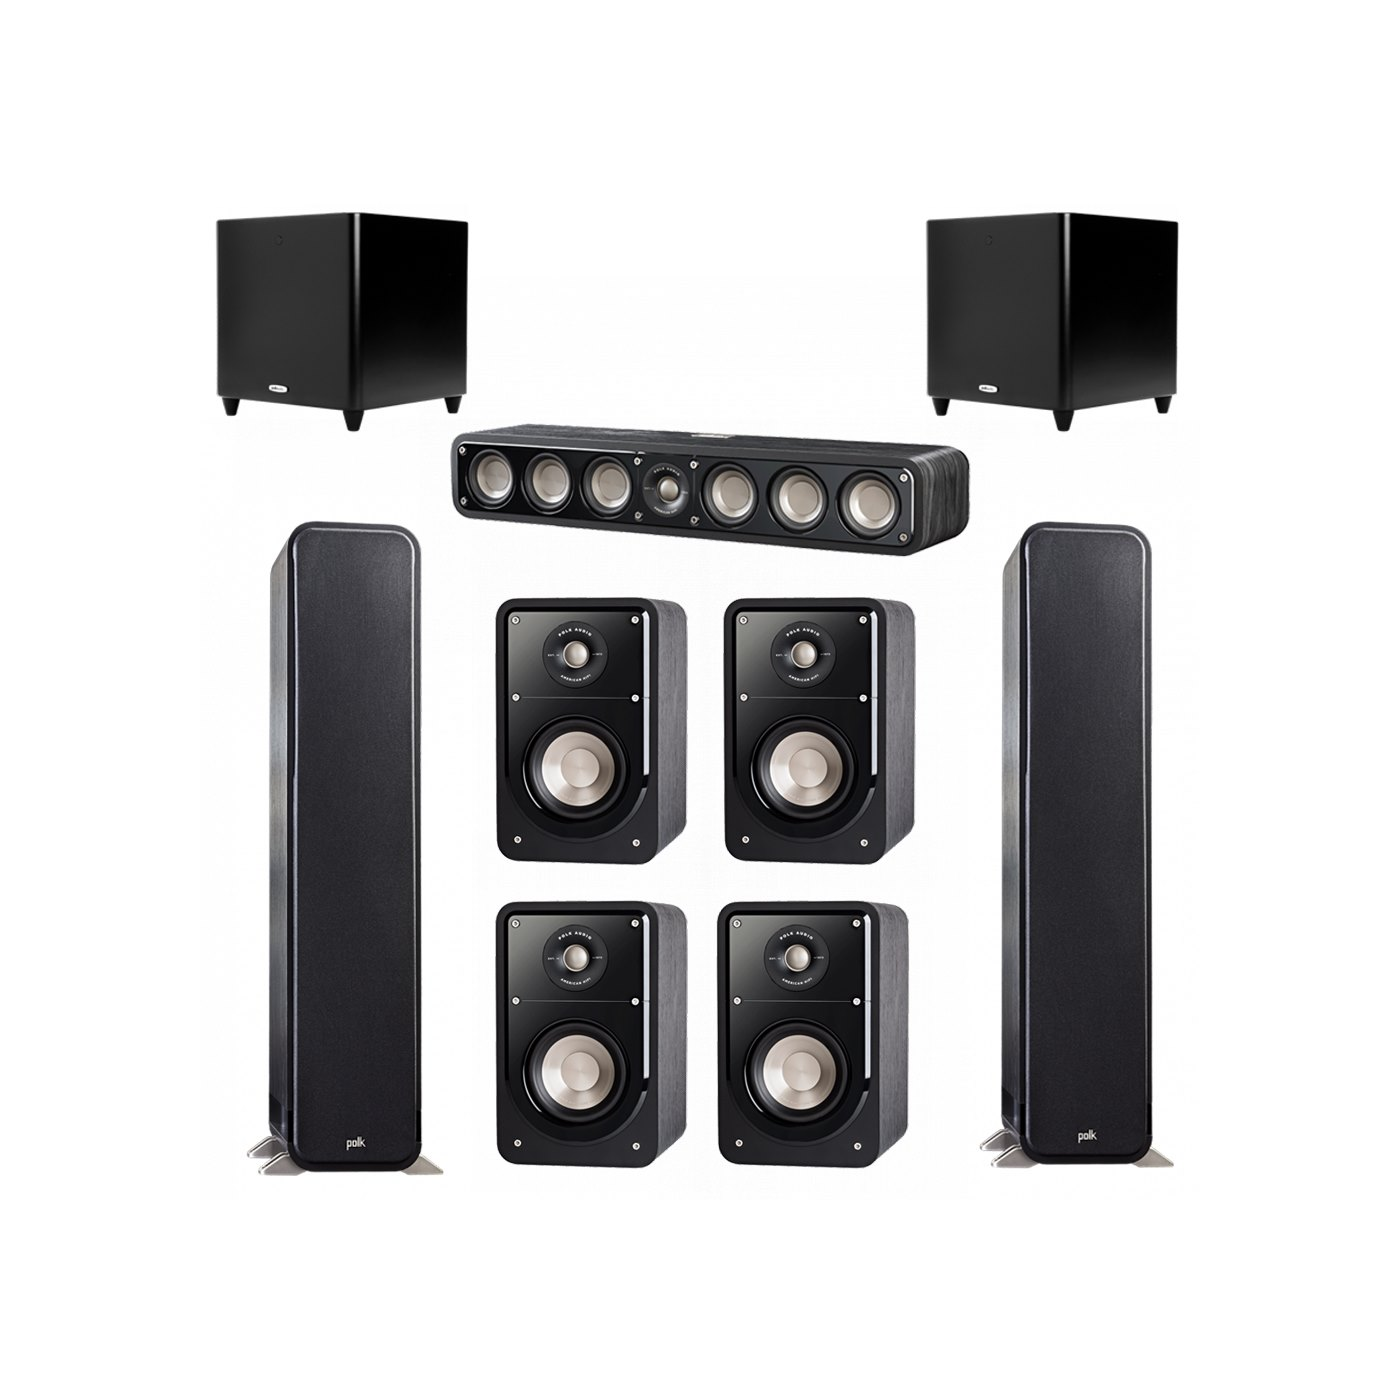 Polk Audio Signature 7.2 System with 2 S55 Tower Speaker, 1 Polk S35 Center Speaker, 4 Polk S15 Bookshelf Speaker, 2 Polk DSW PRO 660 wi Subwoofer